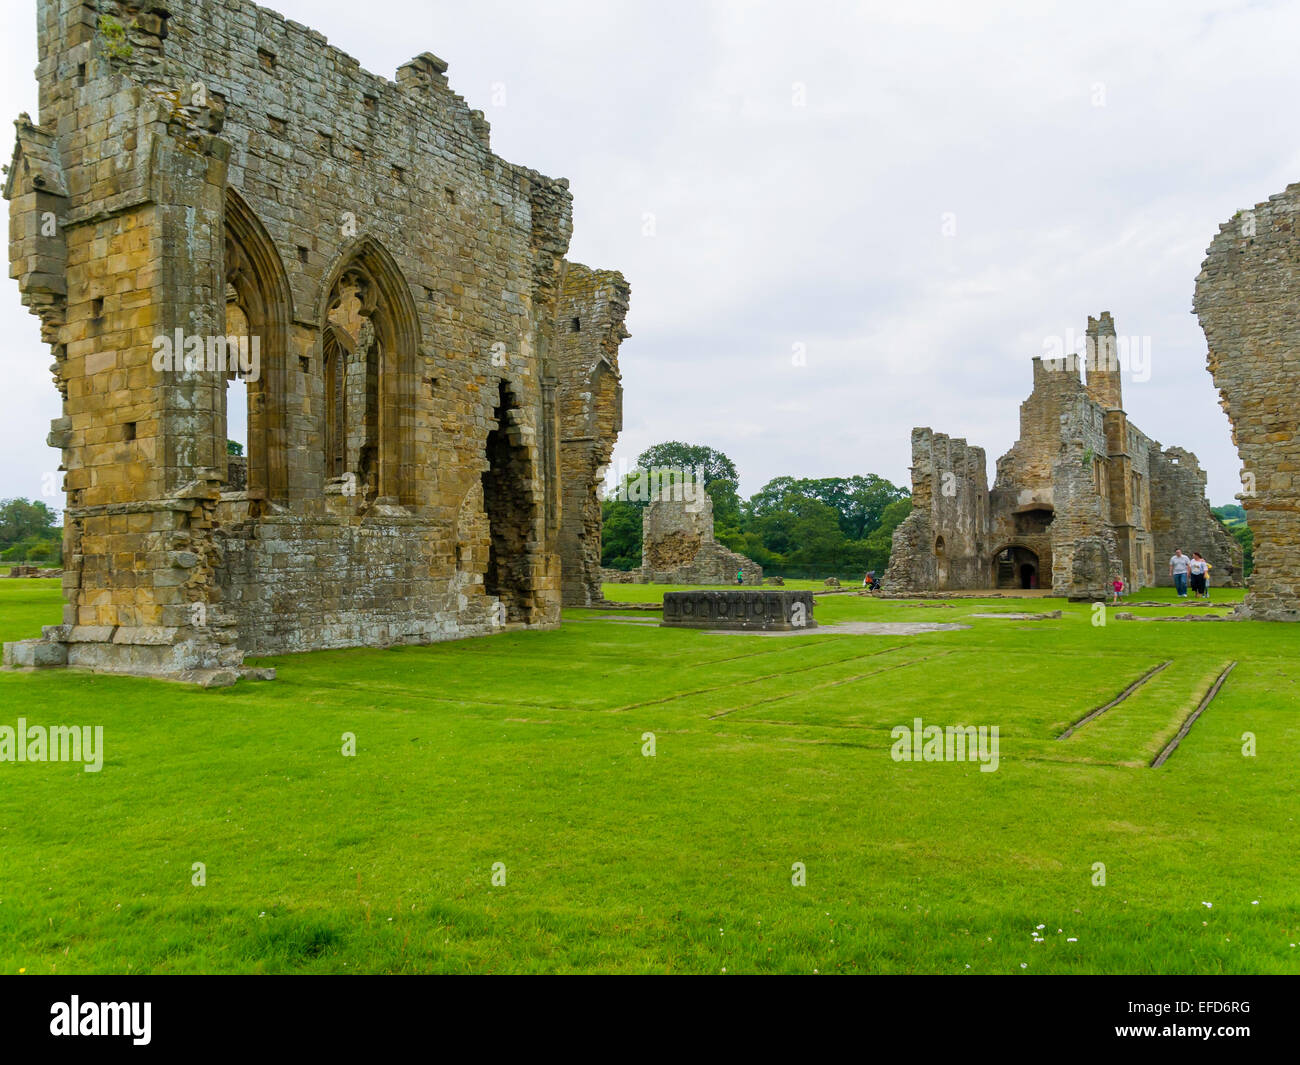 Ruins of the twelfth century  Premonstratensian Abbey of St John the Baptist at Egglestone County Durham England - Stock Image